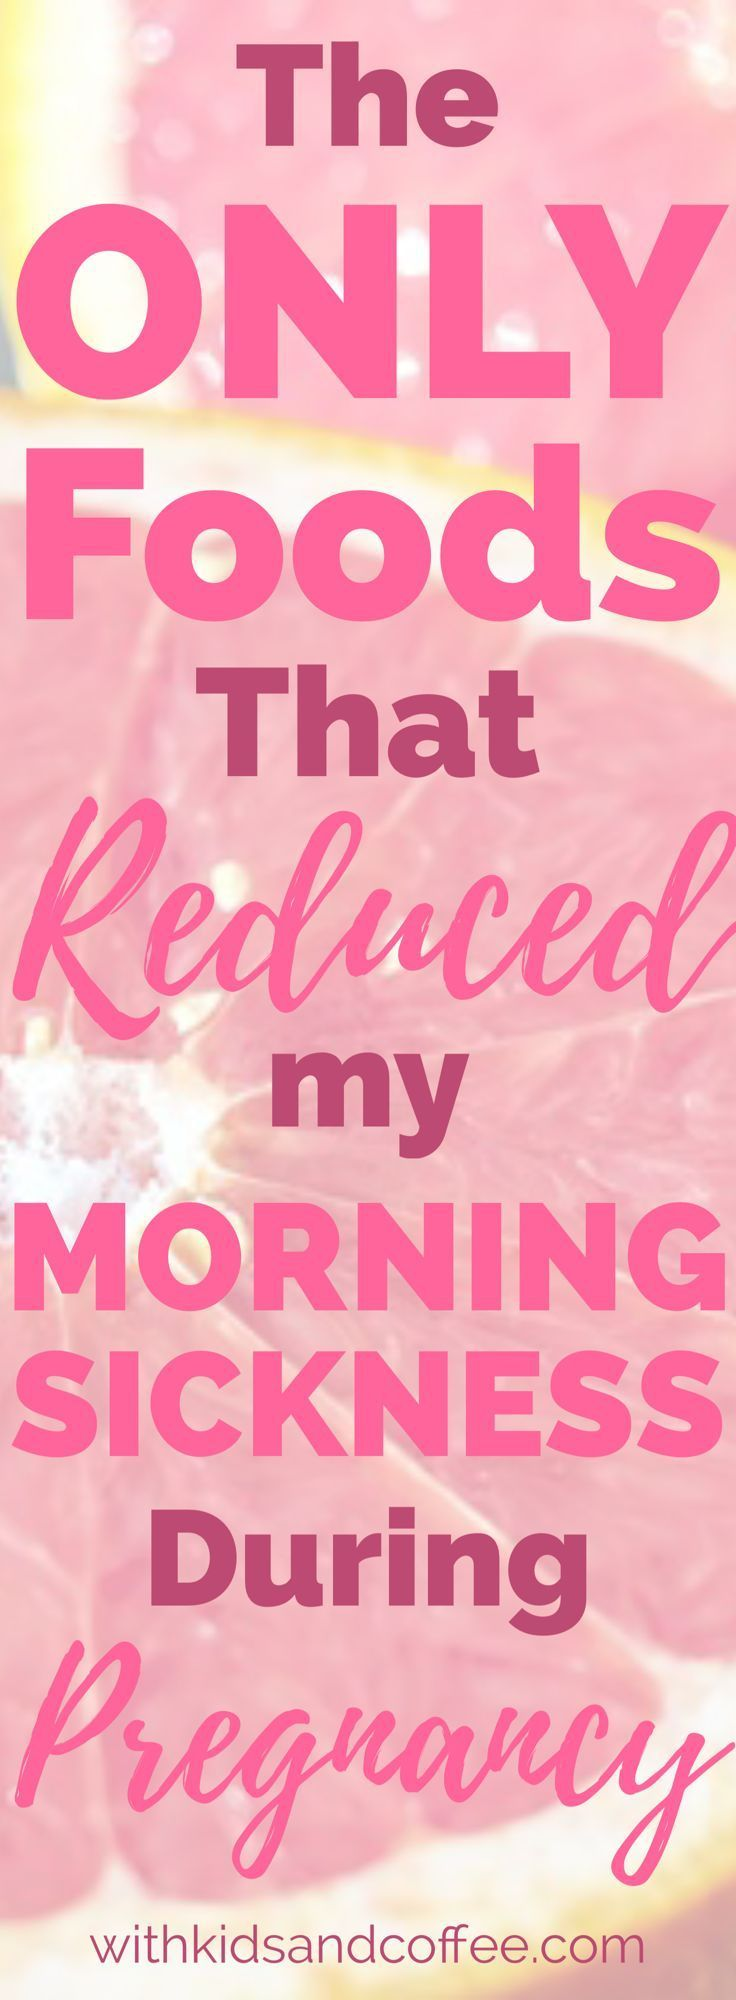 Remedies for morning sickness are incredibly important to know about during pregnancy. Most pregnant women experience nausea. These foods will help reduce morning sickness in a more natural way.